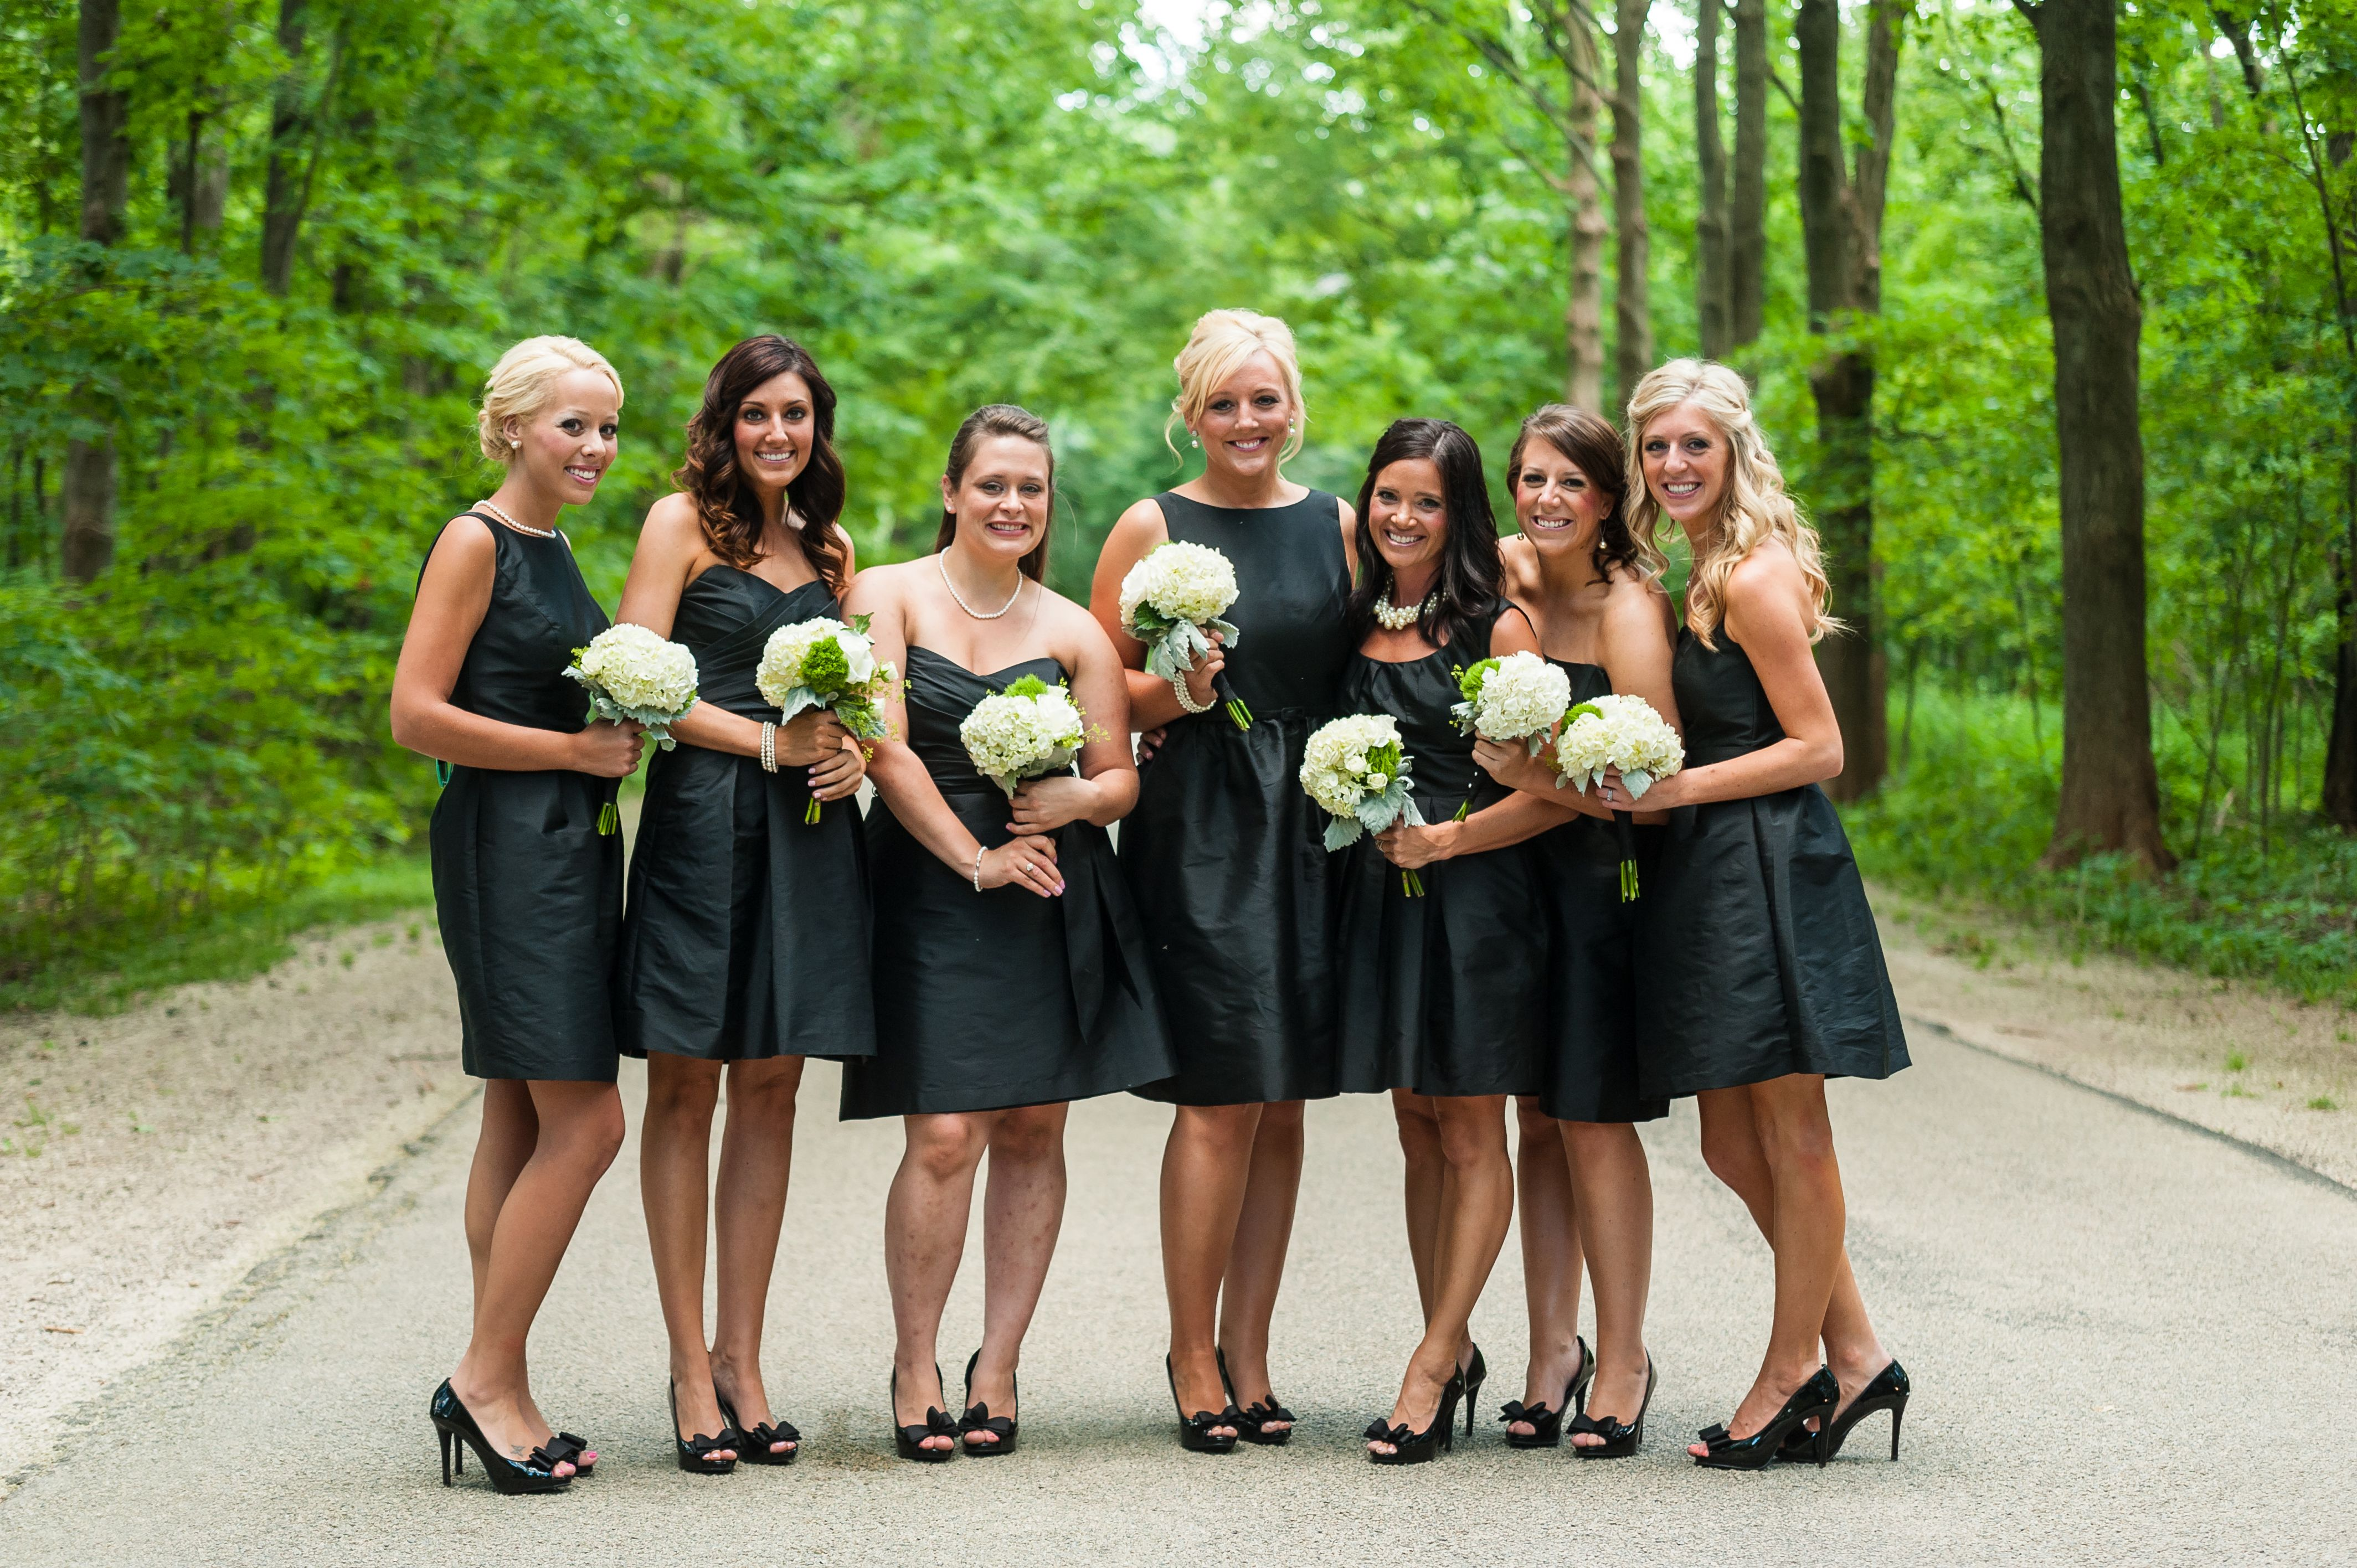 Classy black bridesmaid dresses by alfred sung and matching classy black bridesmaid dresses by alfred sung and matching bridesmaid shoes ombrellifo Images